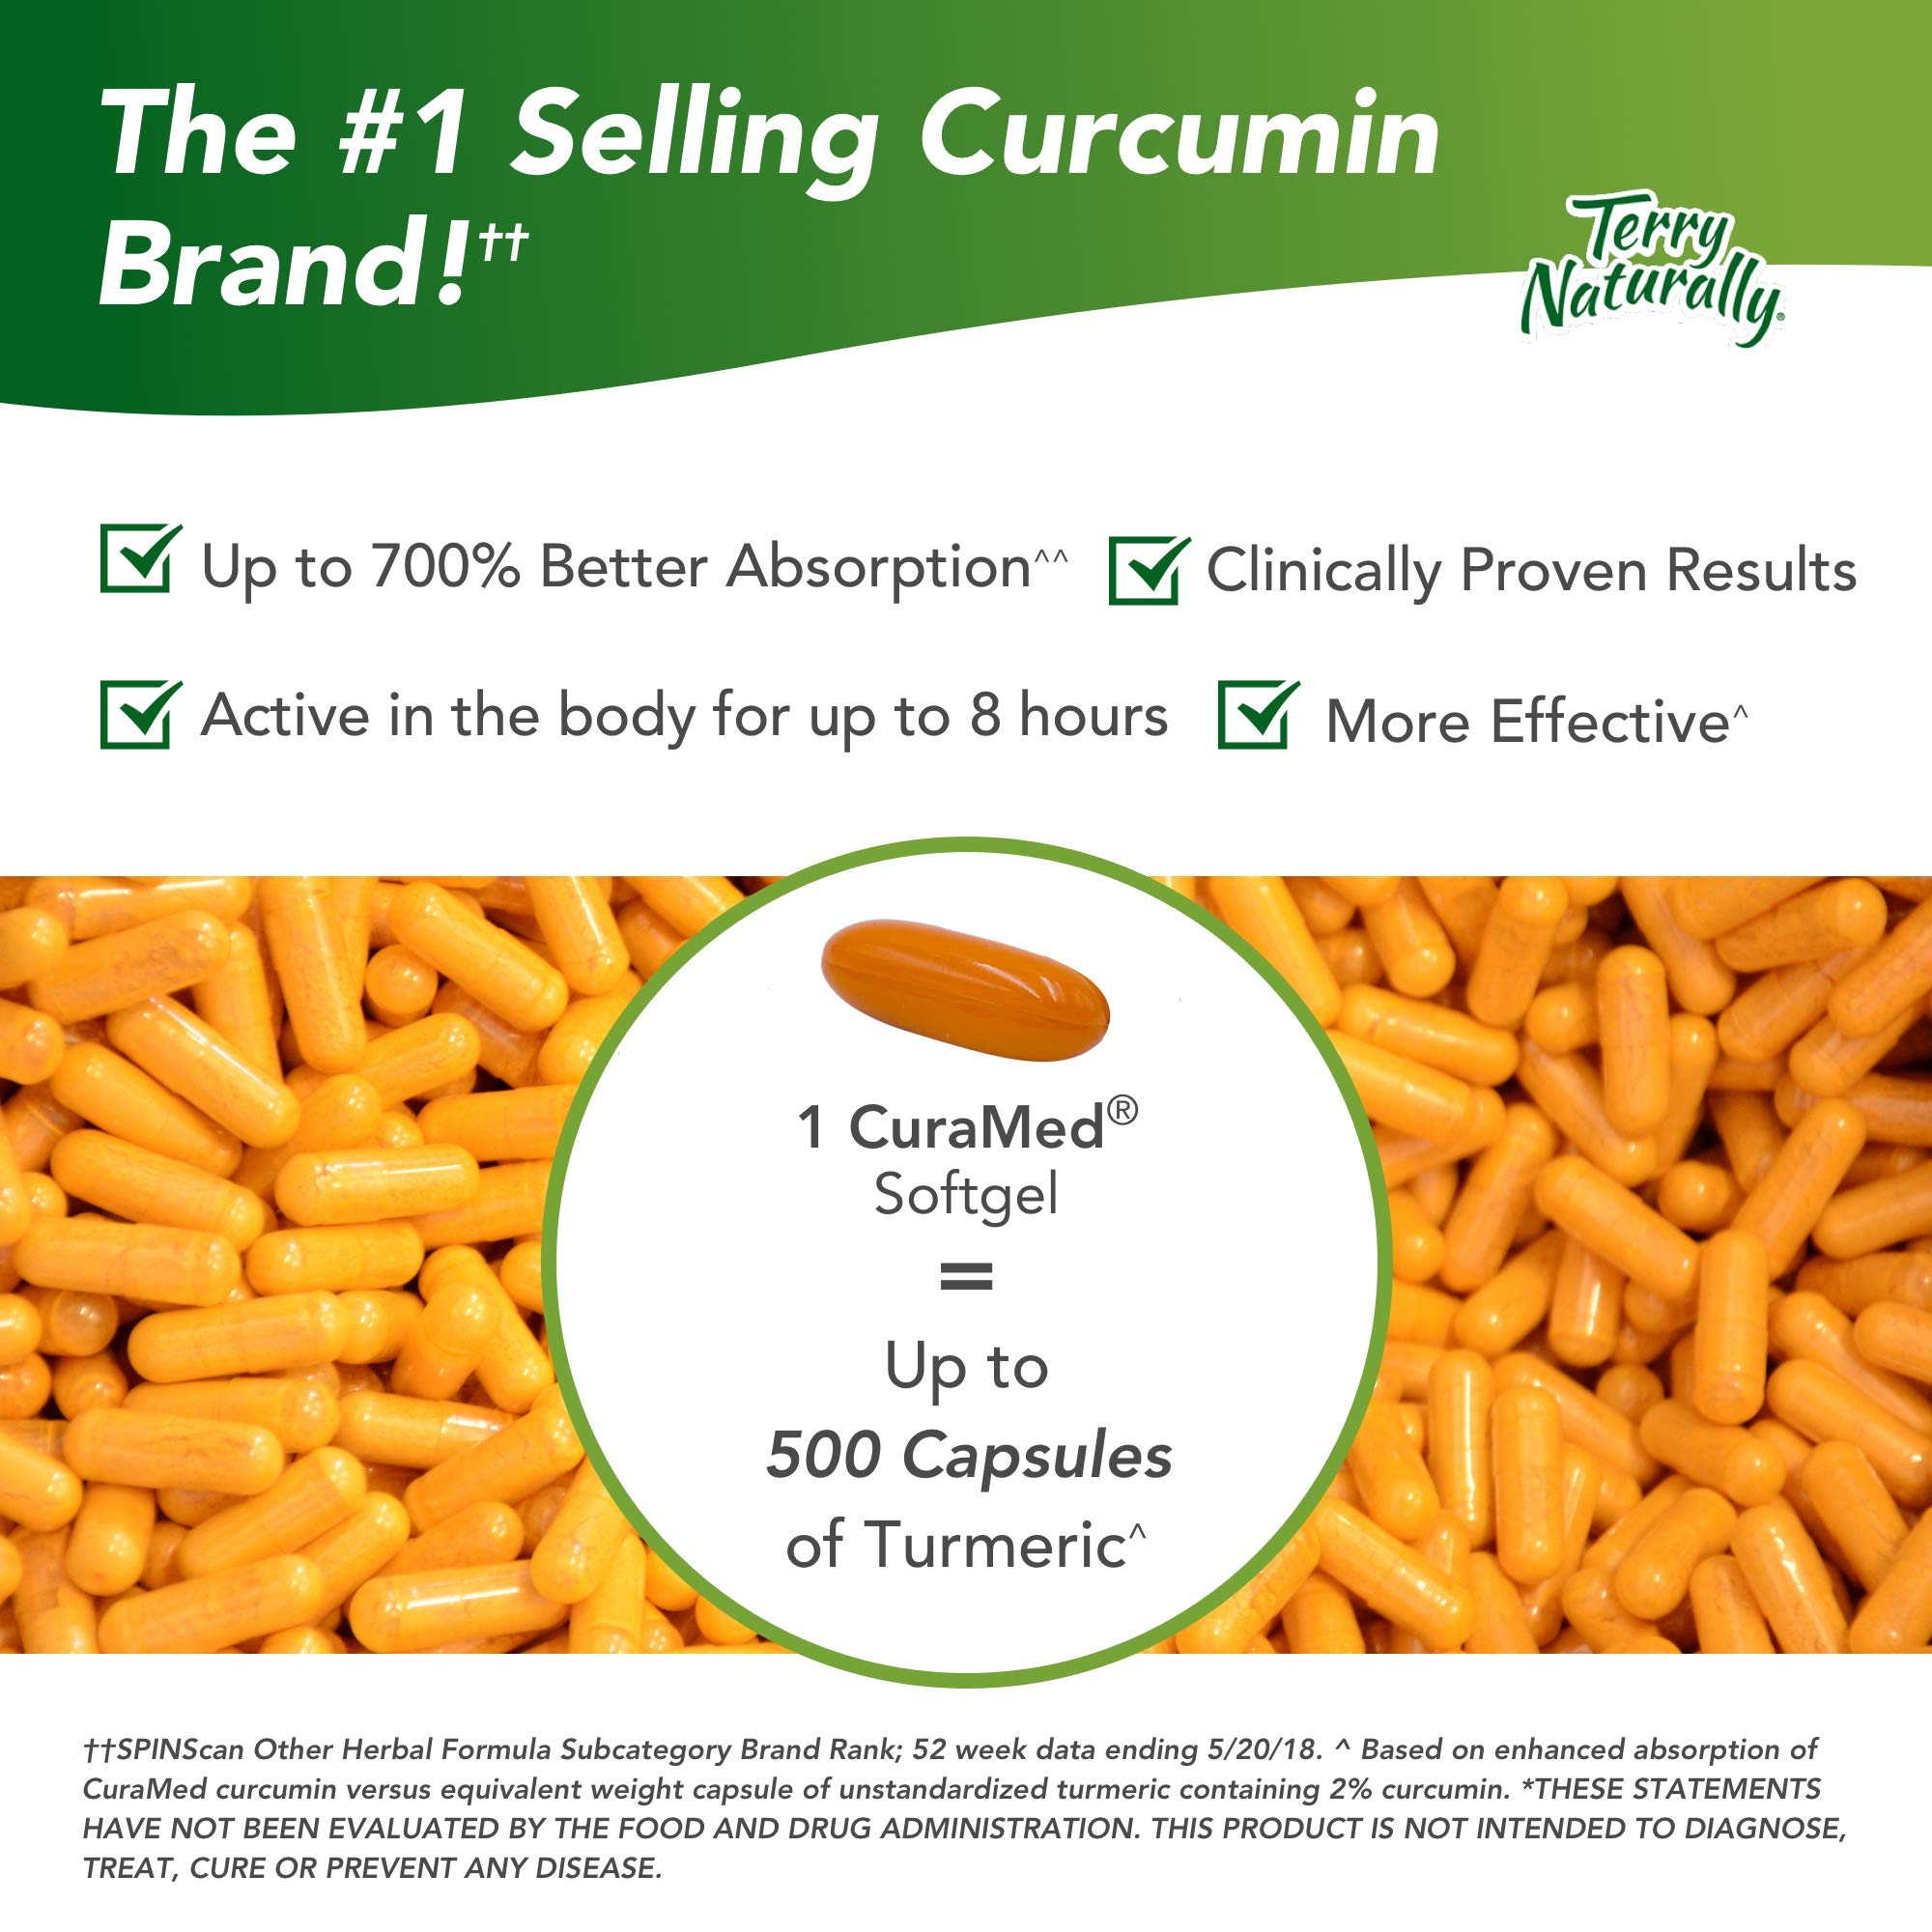 Terry Naturally CuraMed 750 mg - 60 Softgels - Superior Absorption BCM-95 Curcumin Supplement, Promotes Healthy Inflammation Response - Non-GMO, Gluten-Free, Halal - 60 Servings by Terry Naturally (Image #3)